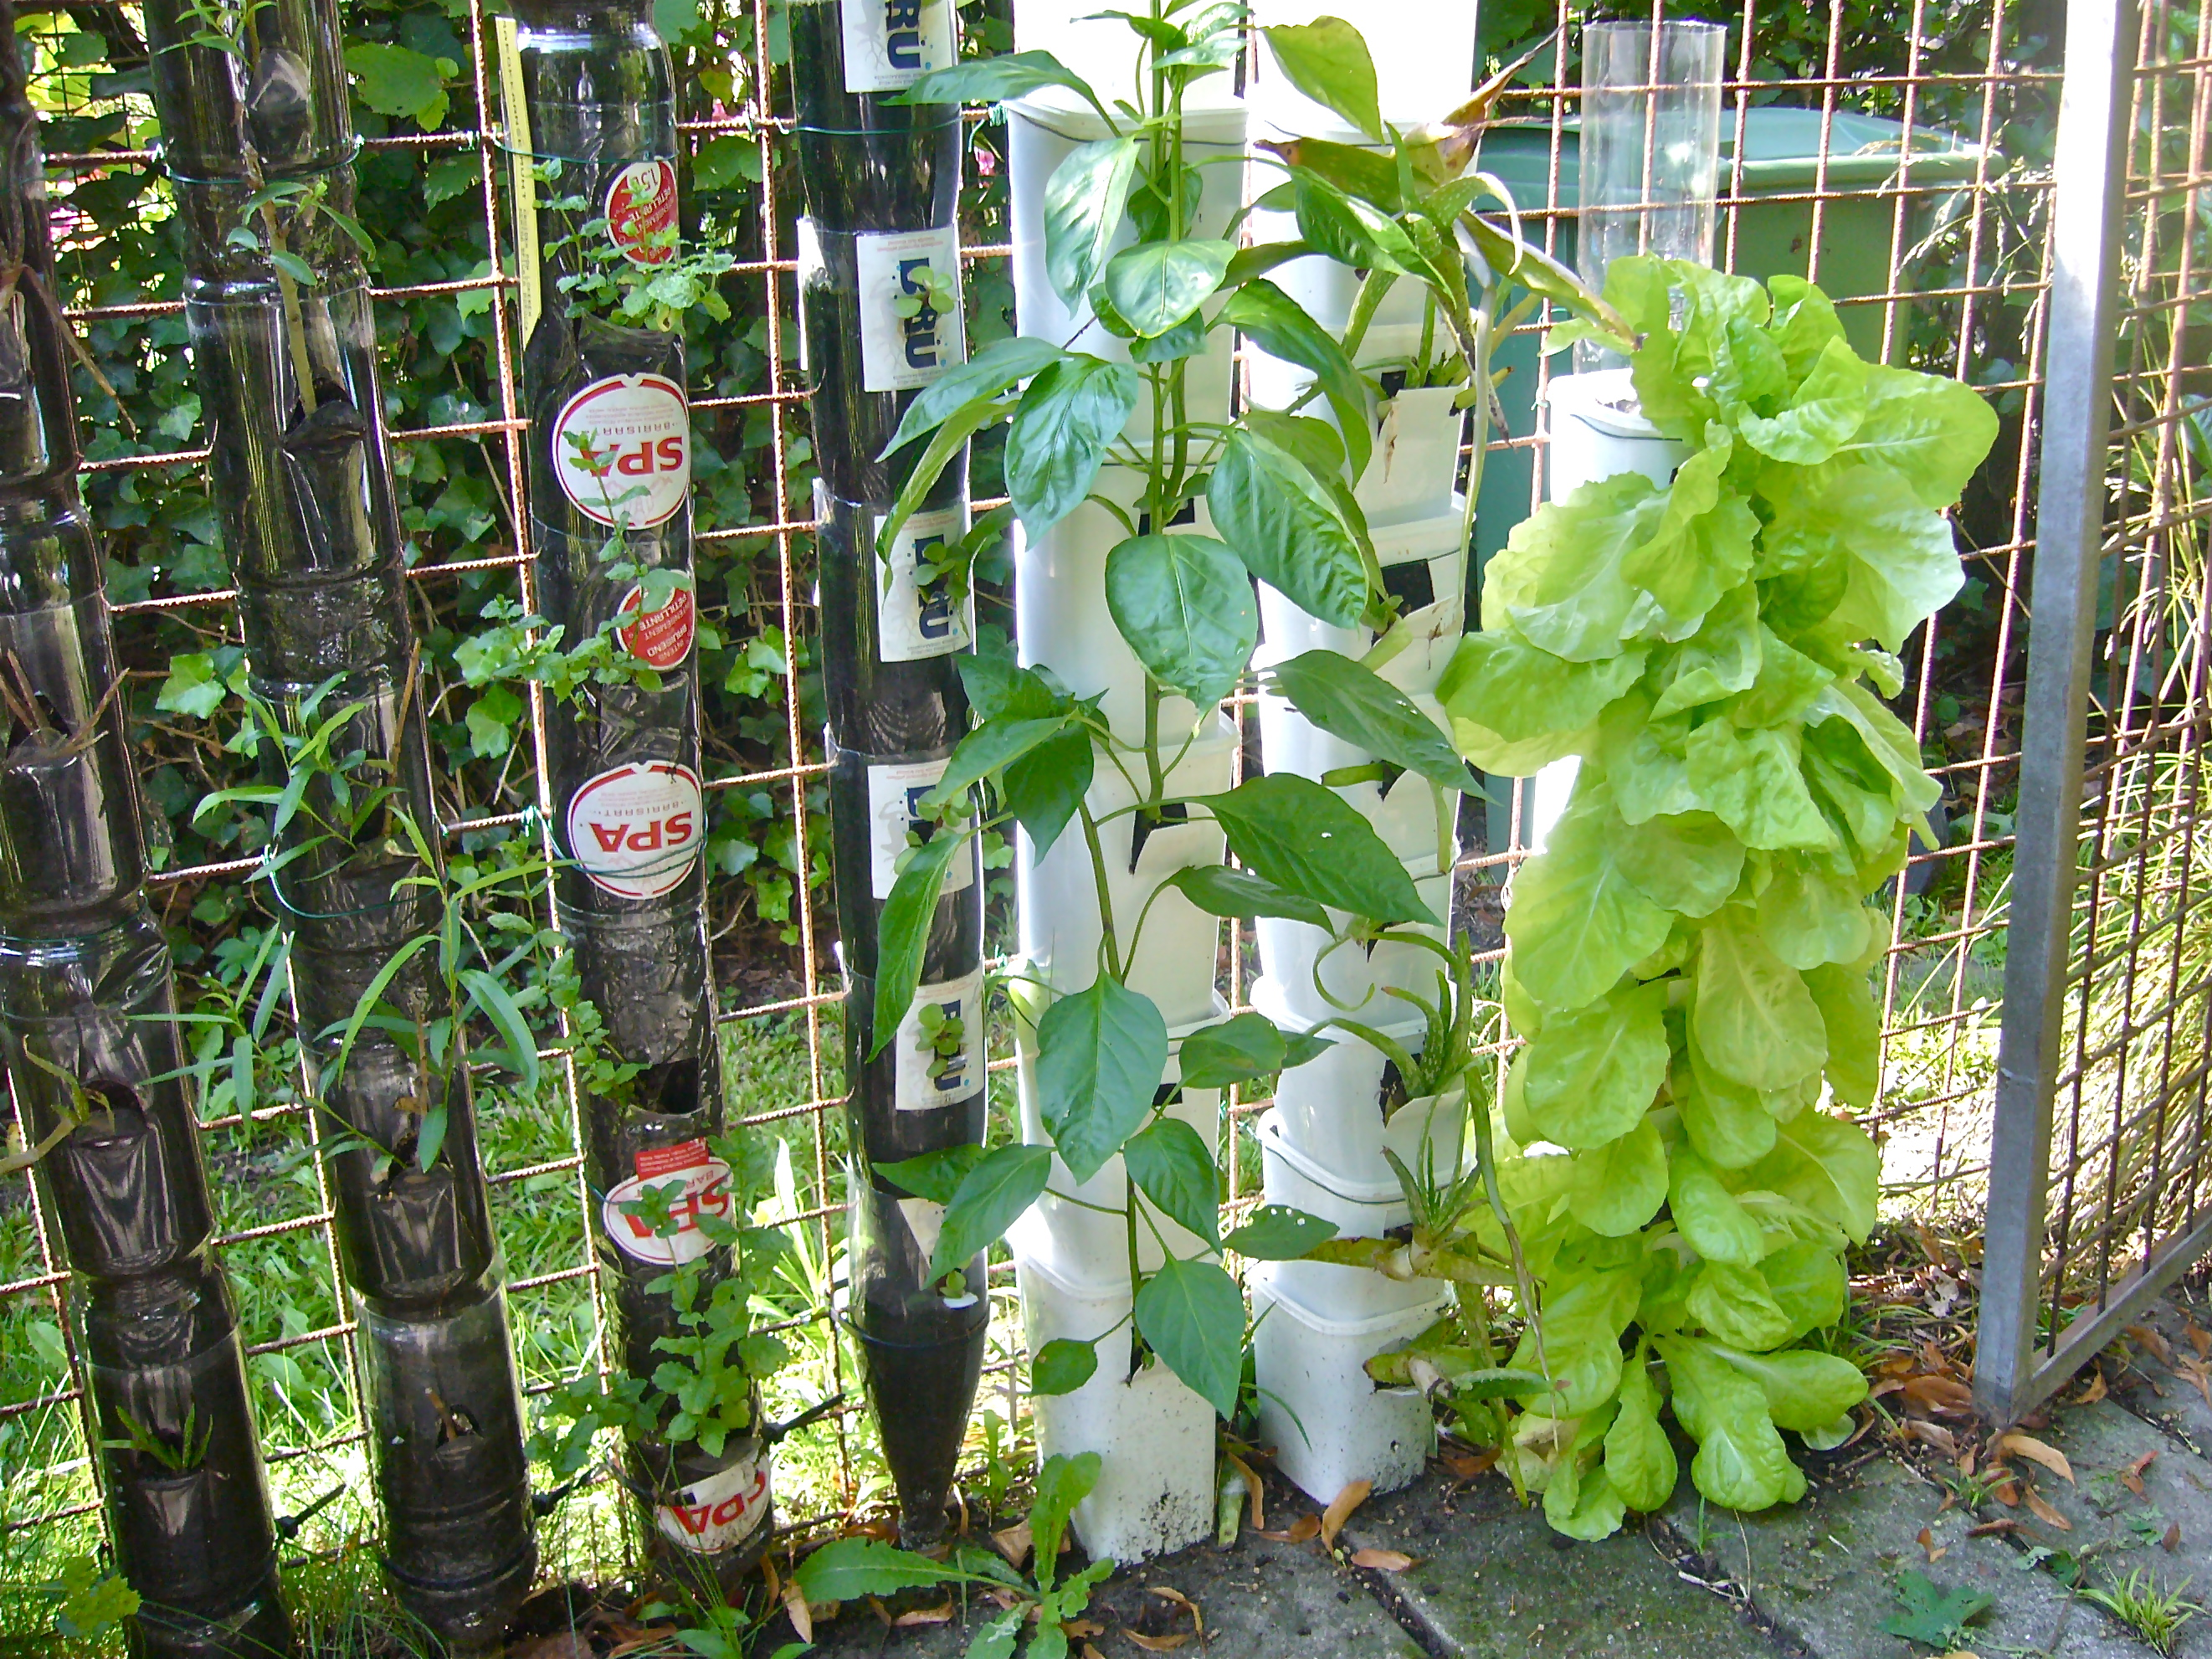 Vertical Vegetable Gardening Plastic Bottles 2643 x 1982